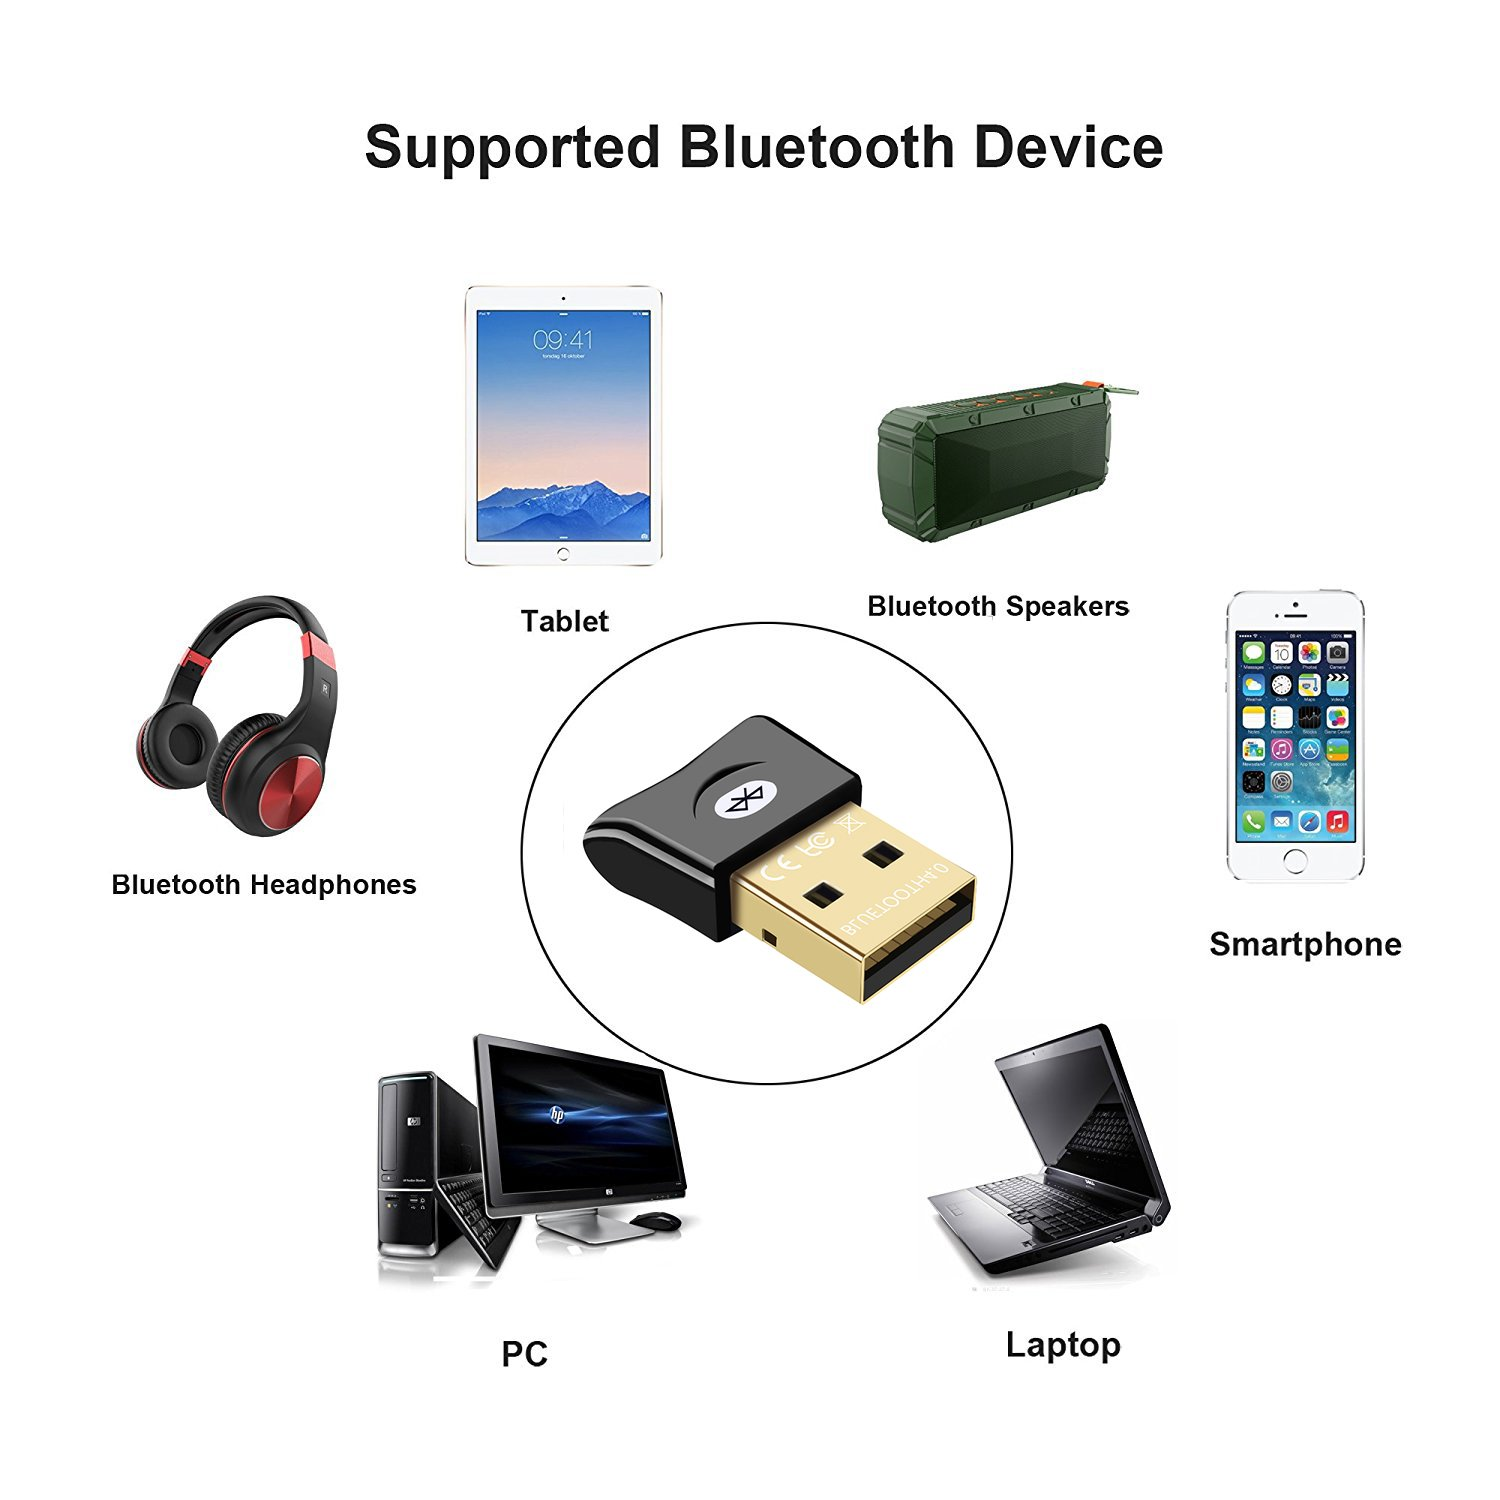 Bluetooth Adapter for PC USB Dongle ZTESY CSR 4.0 Bluetooth Receiver Wireless Transfer for Stereo Headphones Laptop Windows XP/7/8/10/Vista Compatible by ZTESY (Image #3)